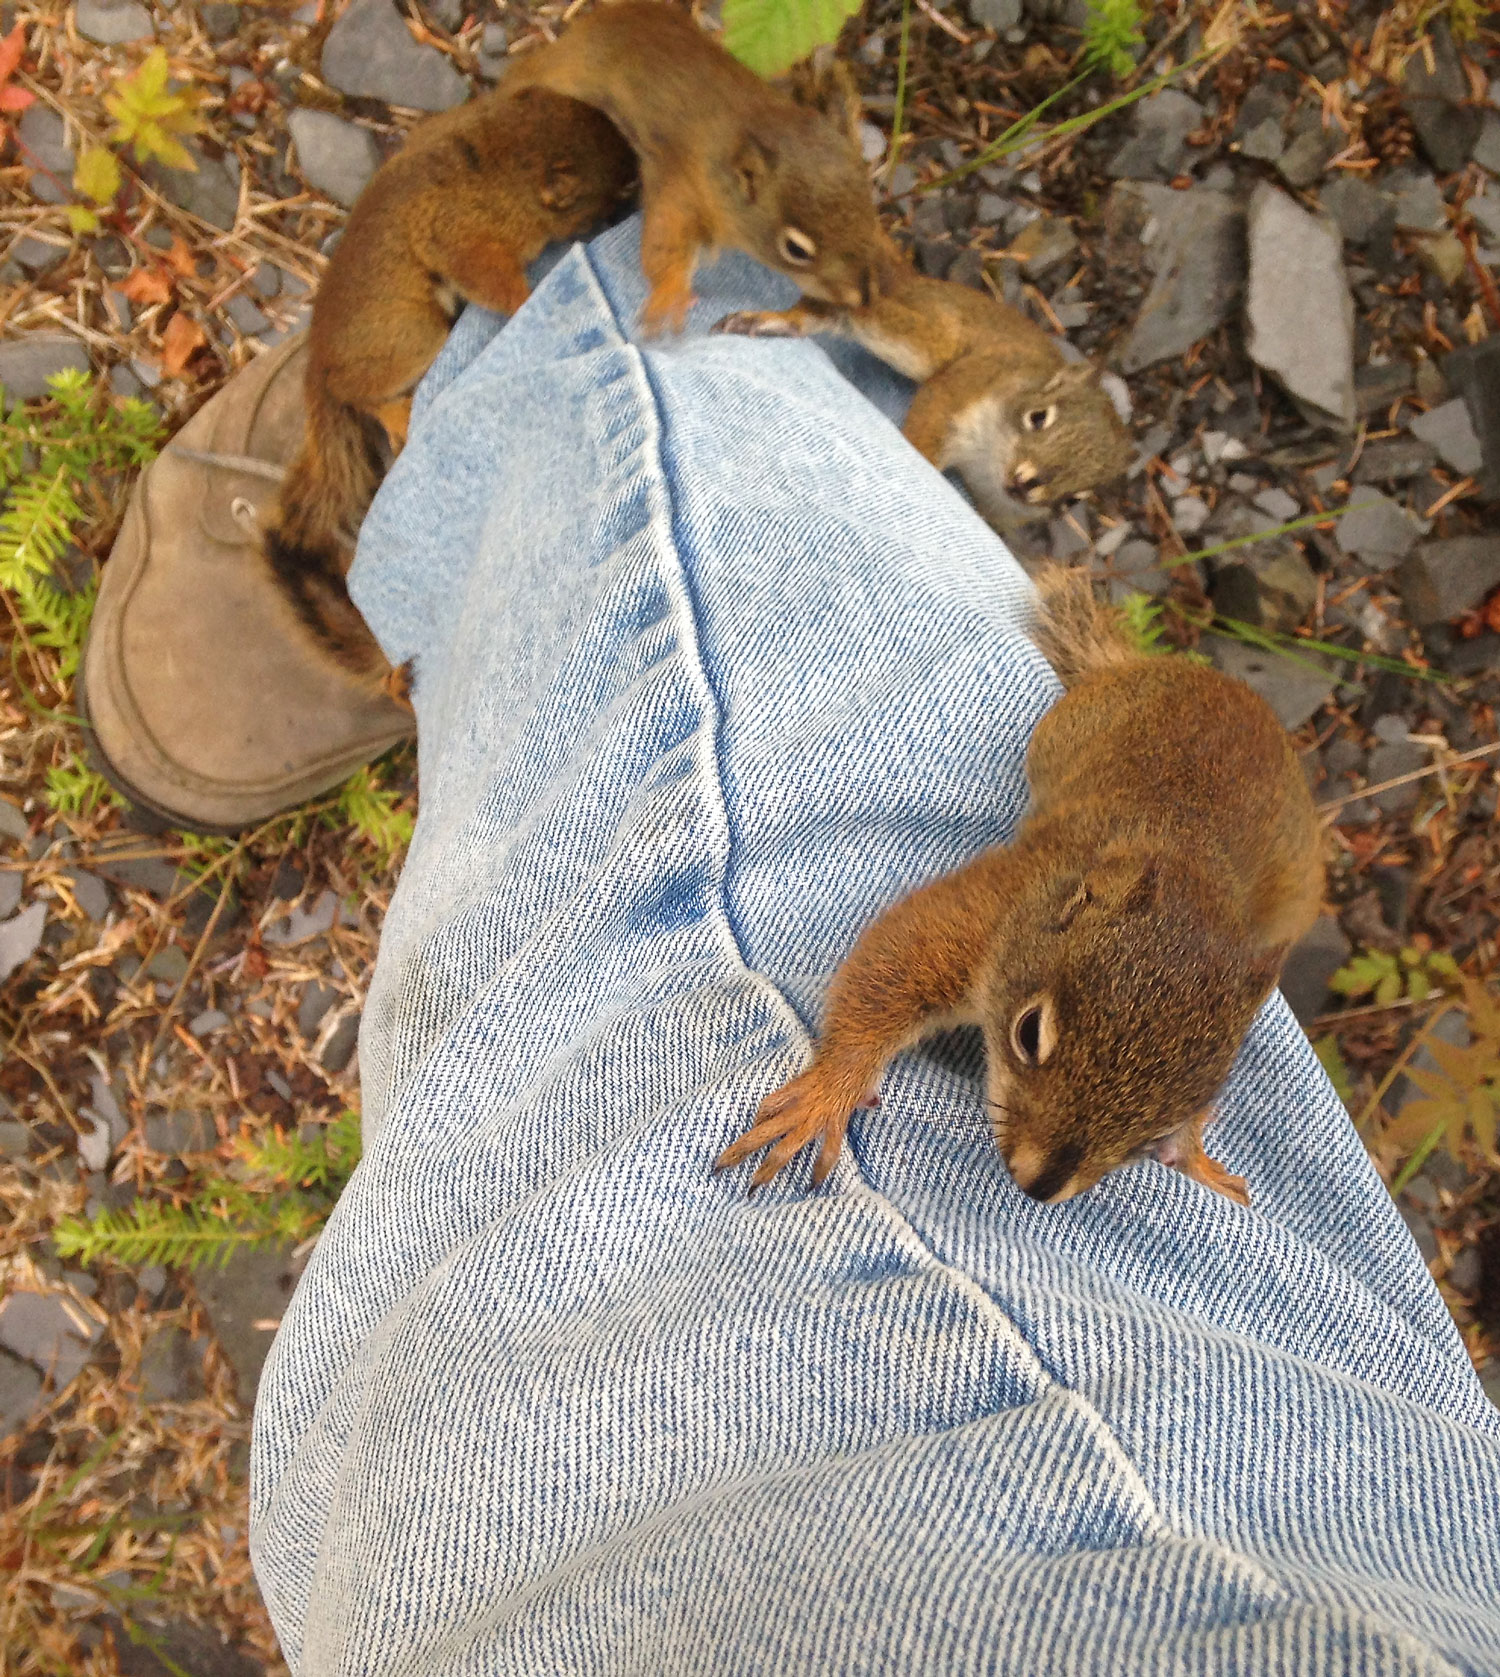 Baby squirrels running up jeans leg Wrangell Southeast Alaska super cute funny